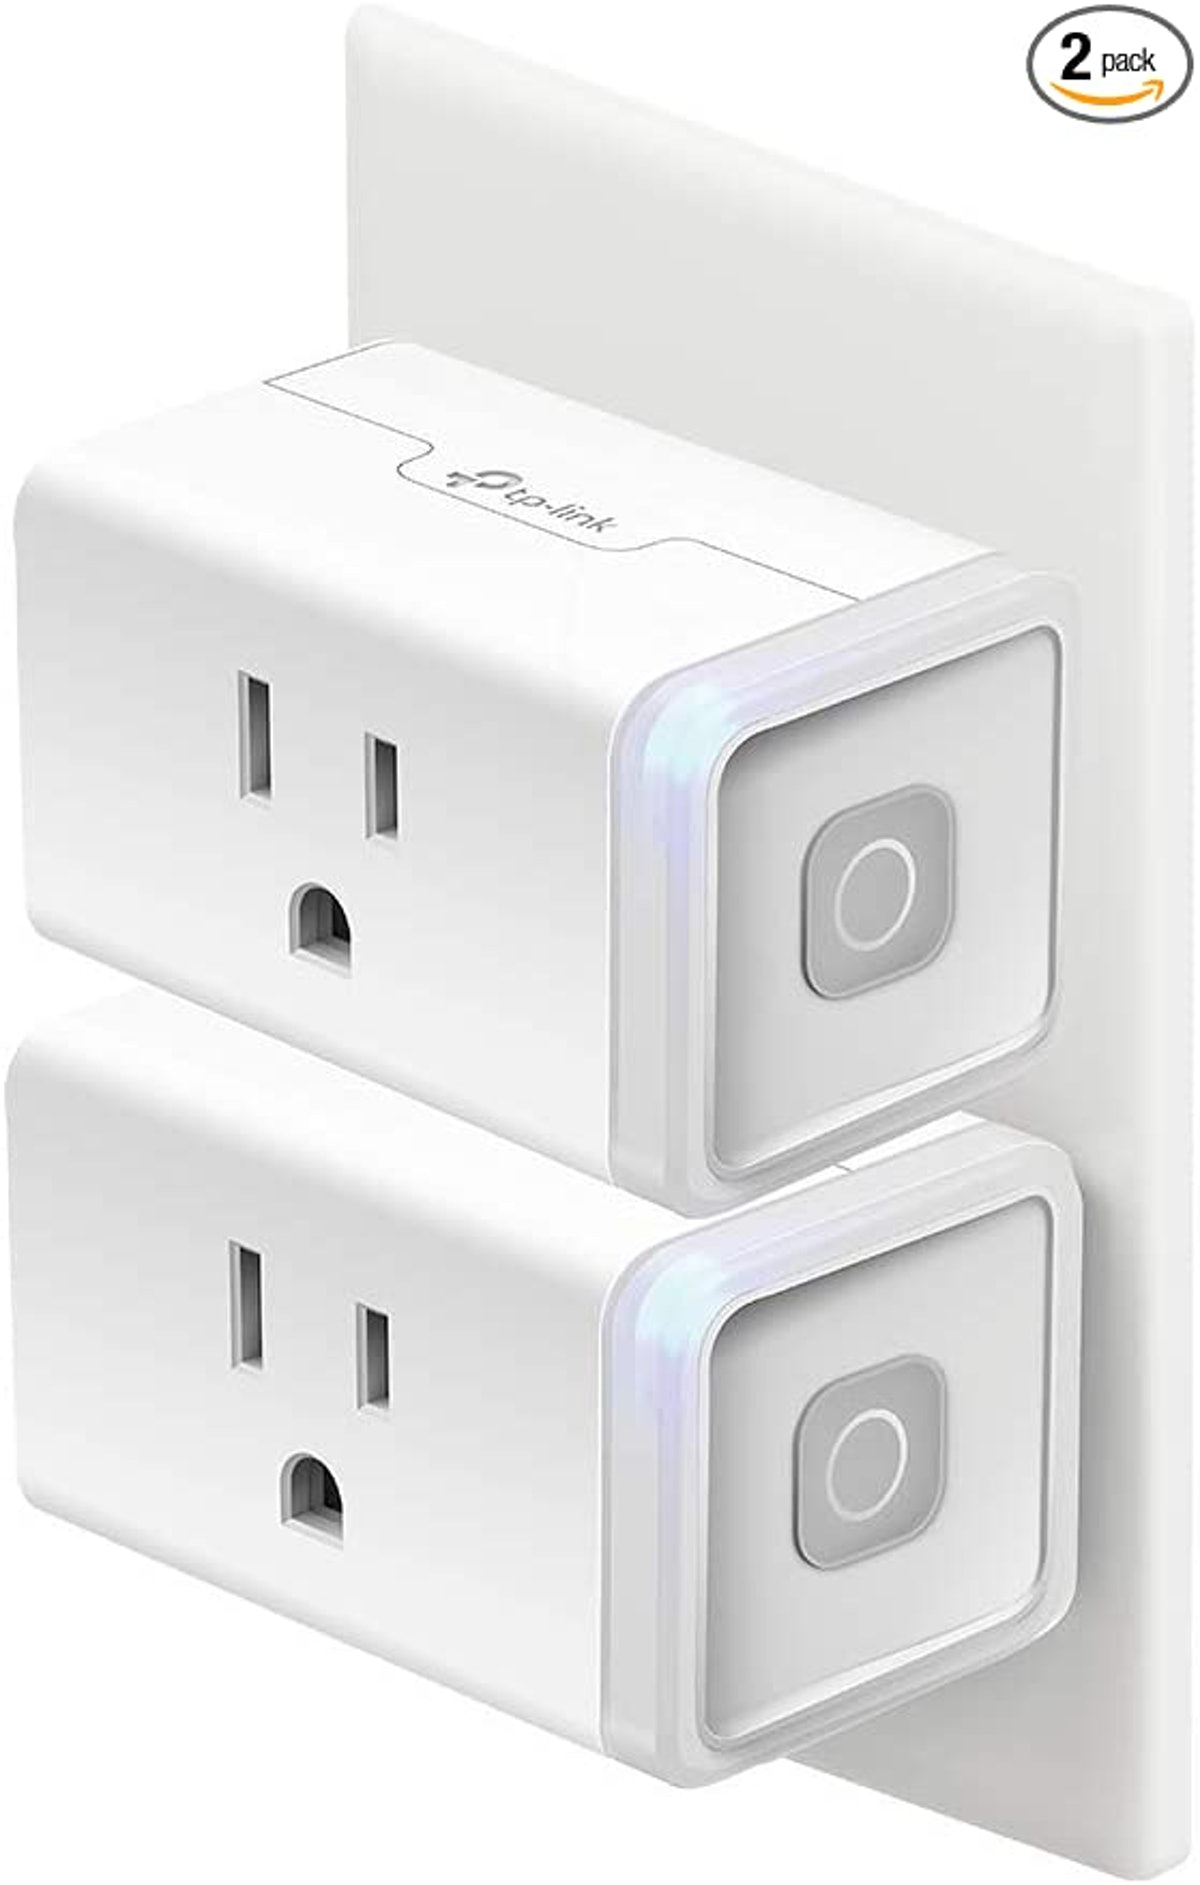 Kasa Smart Home Wi-Fi Outlet (2-Pack)